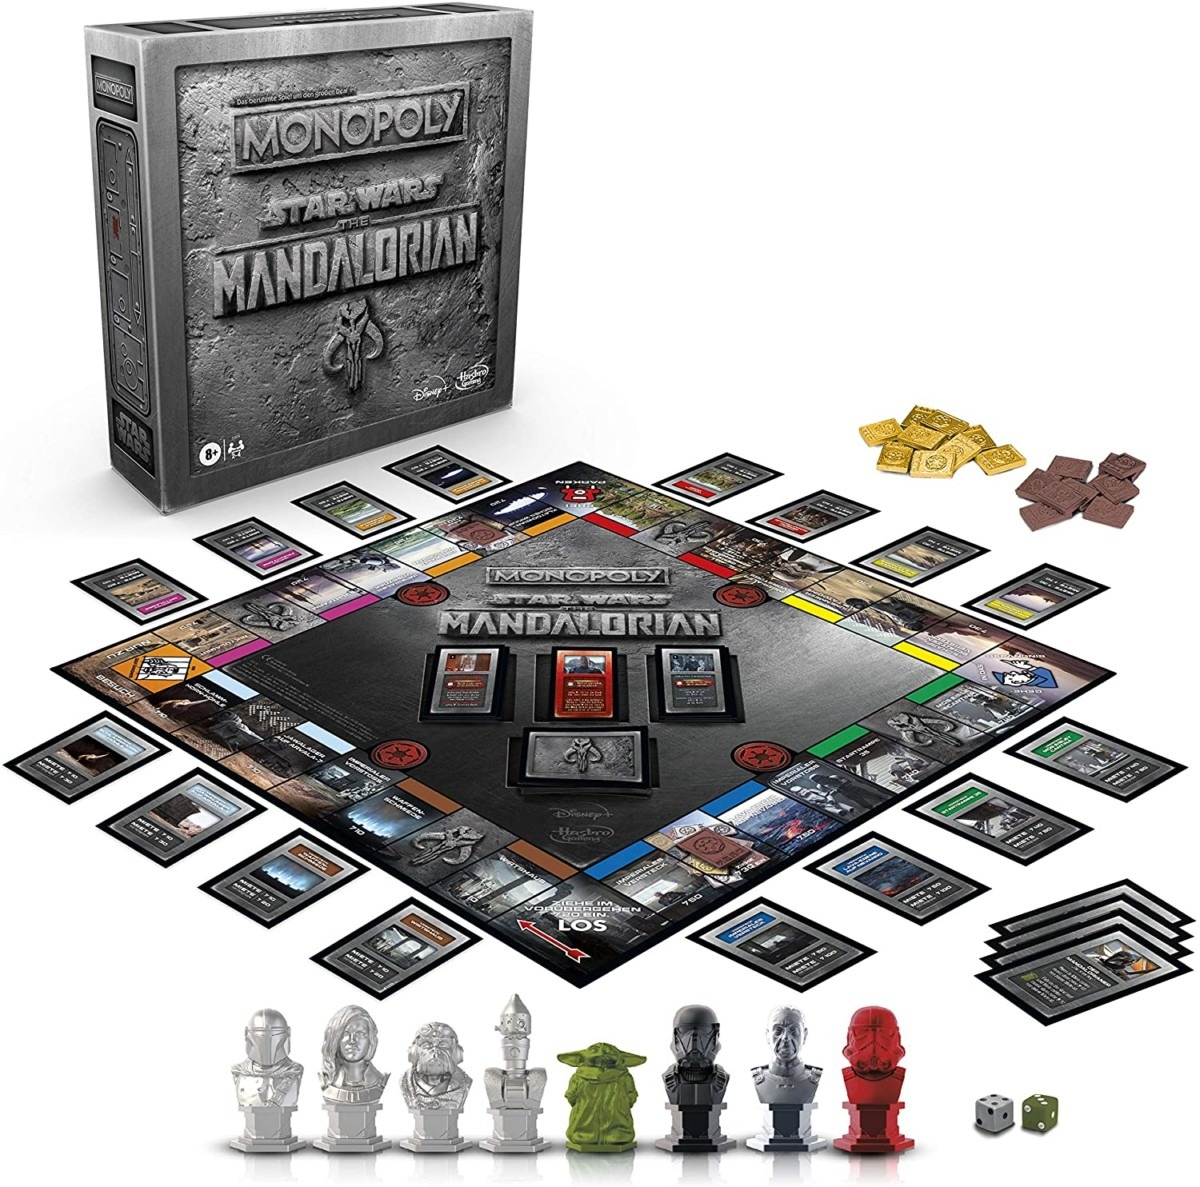 Star Wars The Mandalorian Monopoly